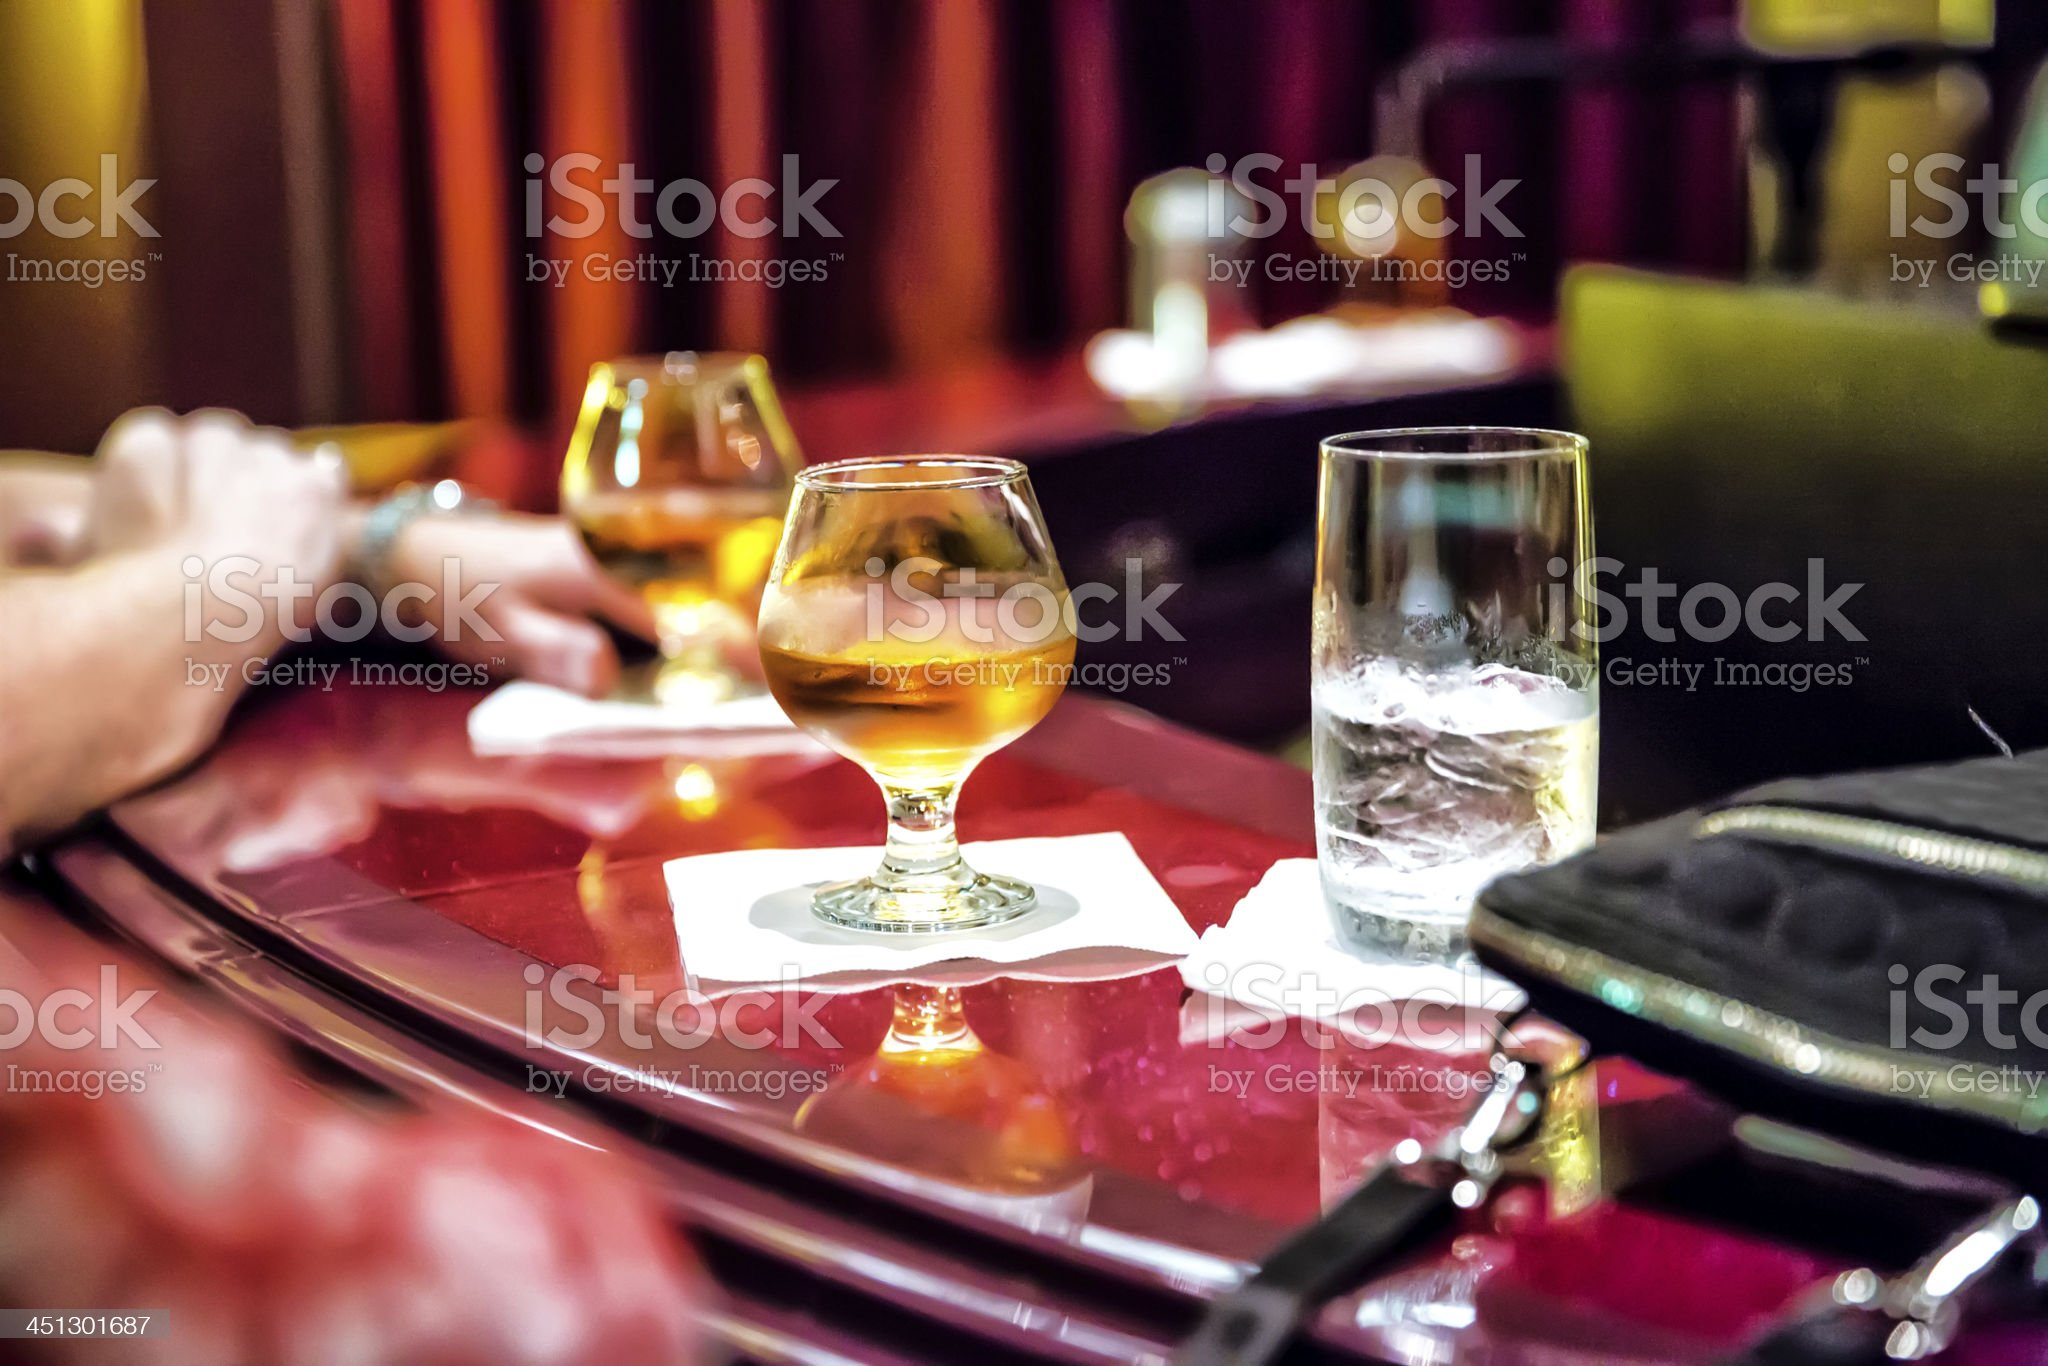 Unfinished alcoholic drinks on a bar countertop New year's Eve royalty-free stock photo